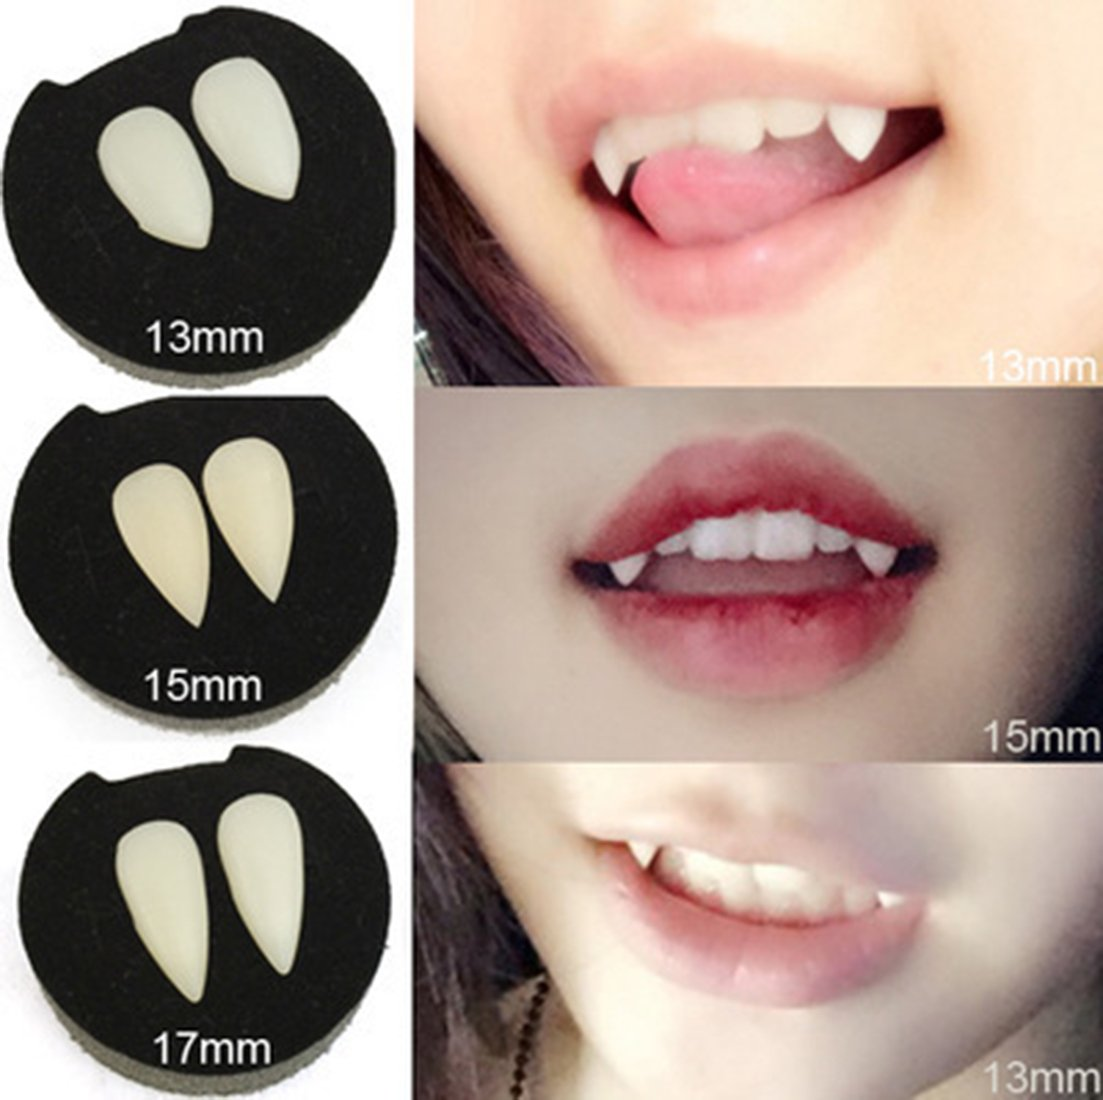 NIGHT-GRING Halloween Party Cosplay Prop Decoration Vampire Tooth Horror False Teeth -6 pieces